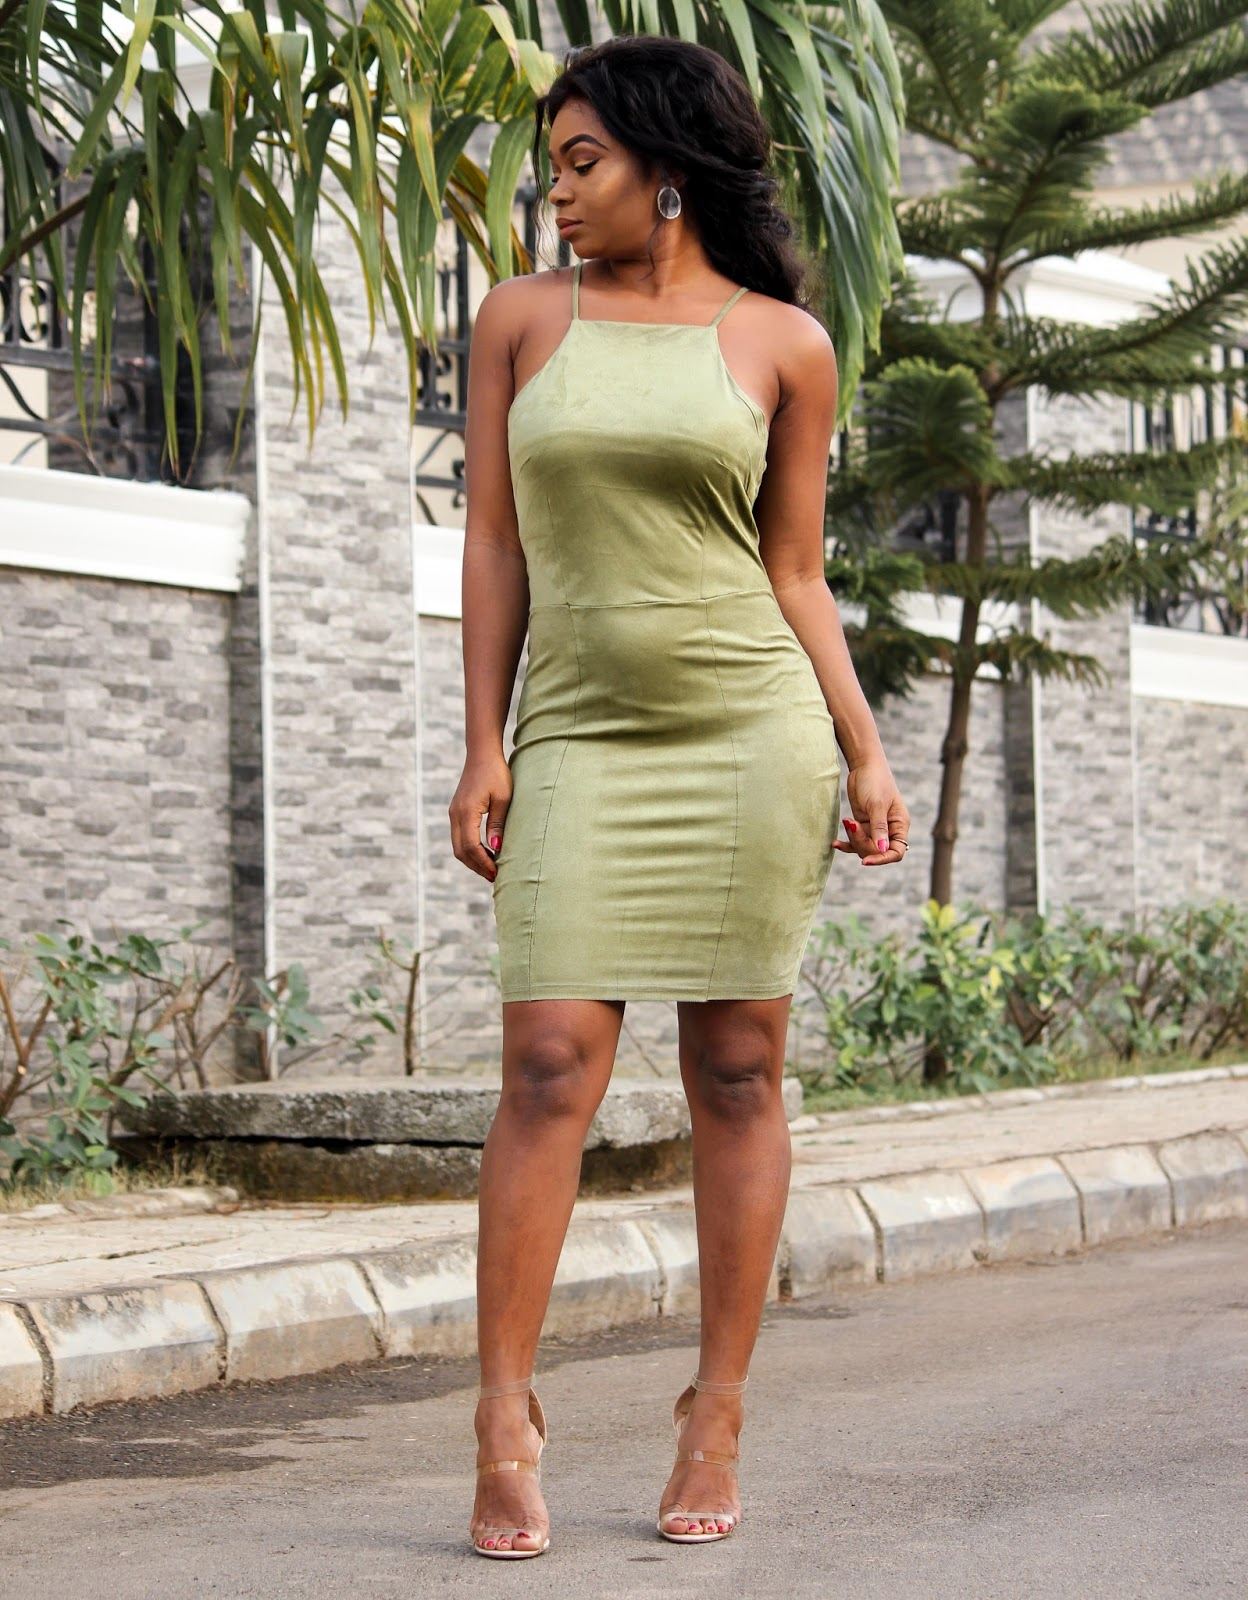 OLIVE GREEN BODYCON - Olive Green Bodycon Dress from Jumia with Nude Public Desire Sandals